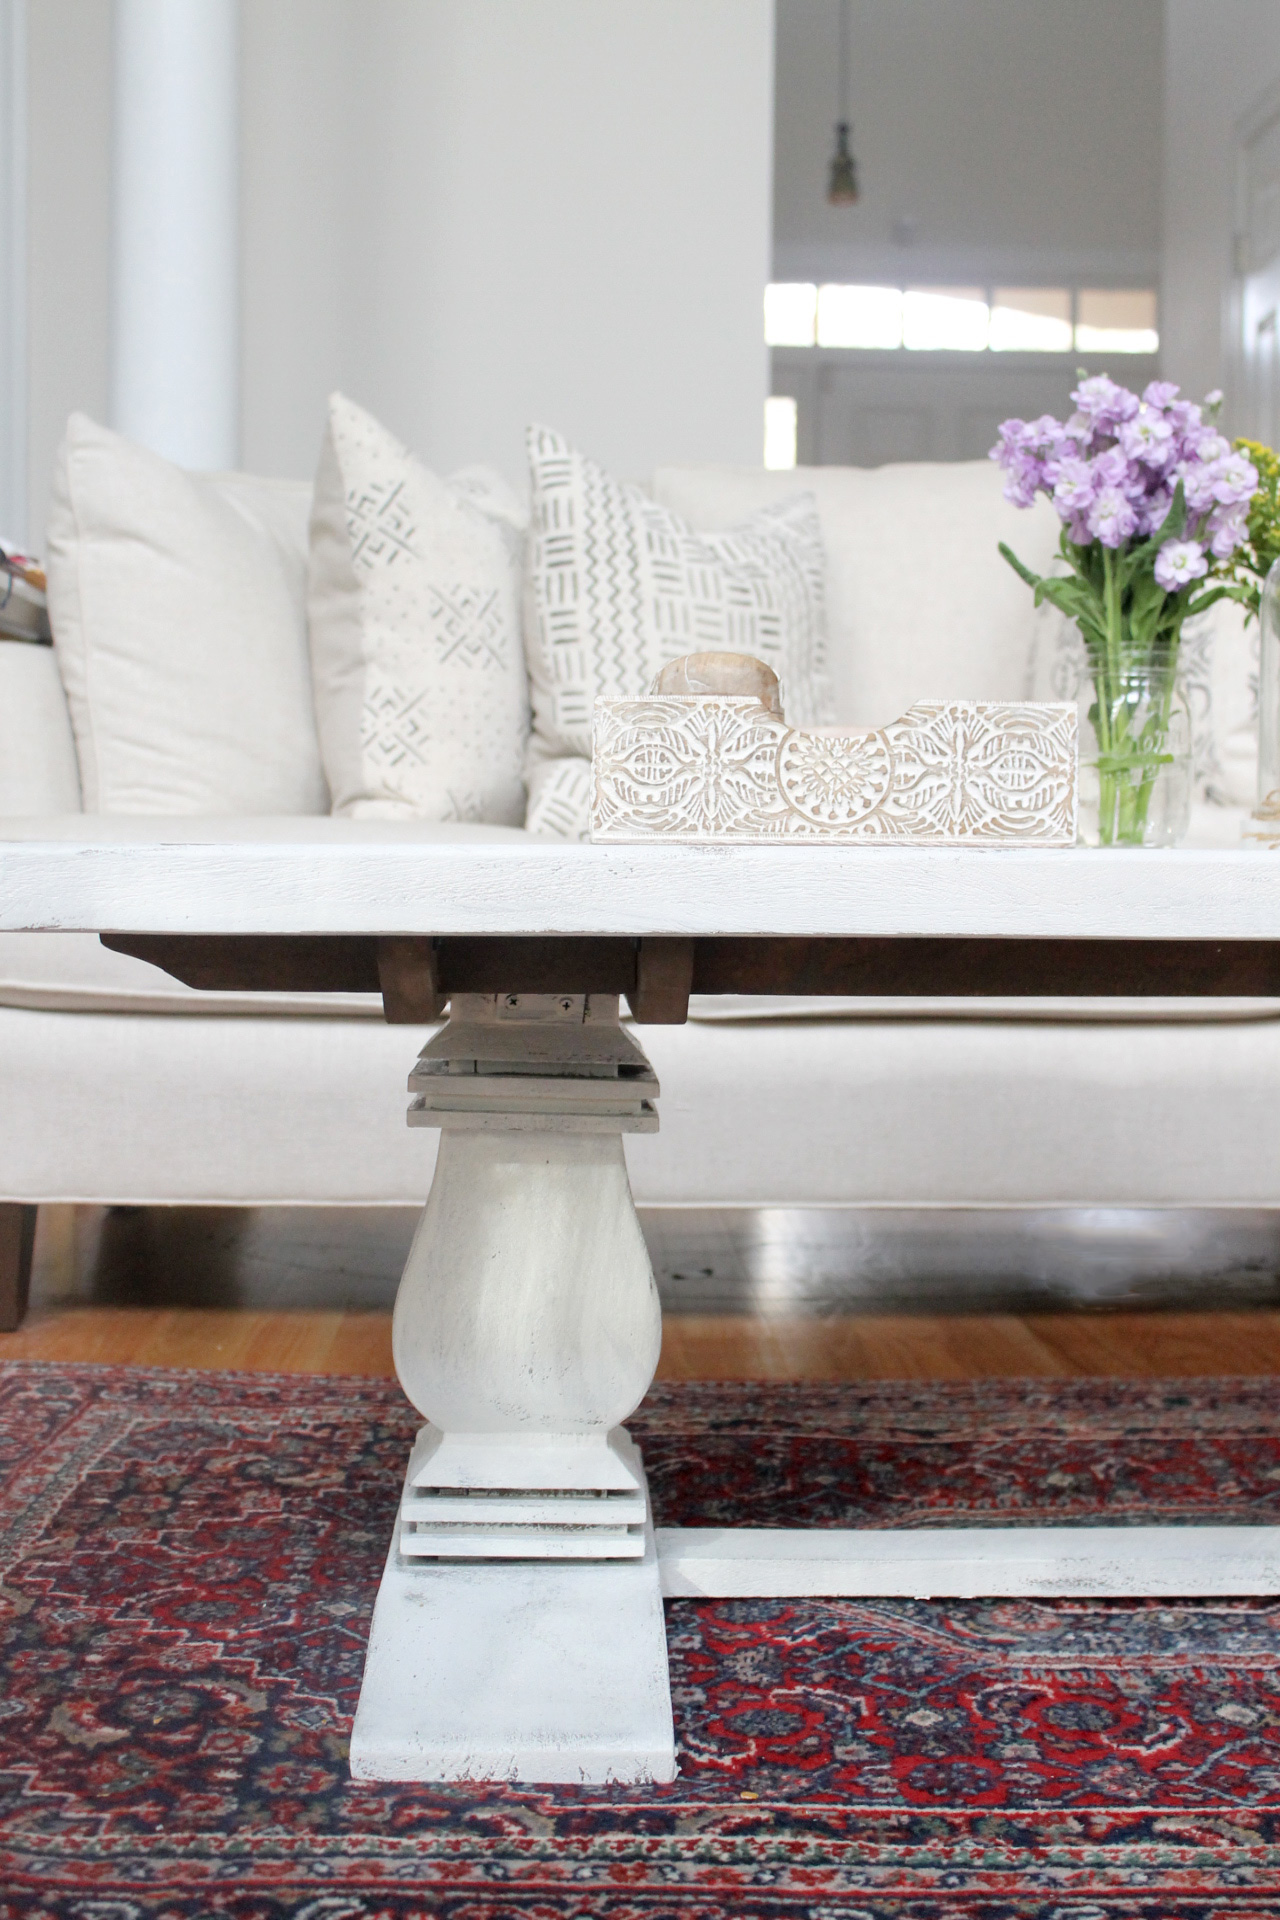 How to Distress A Shabby Chic Coffee Table the Easy Way